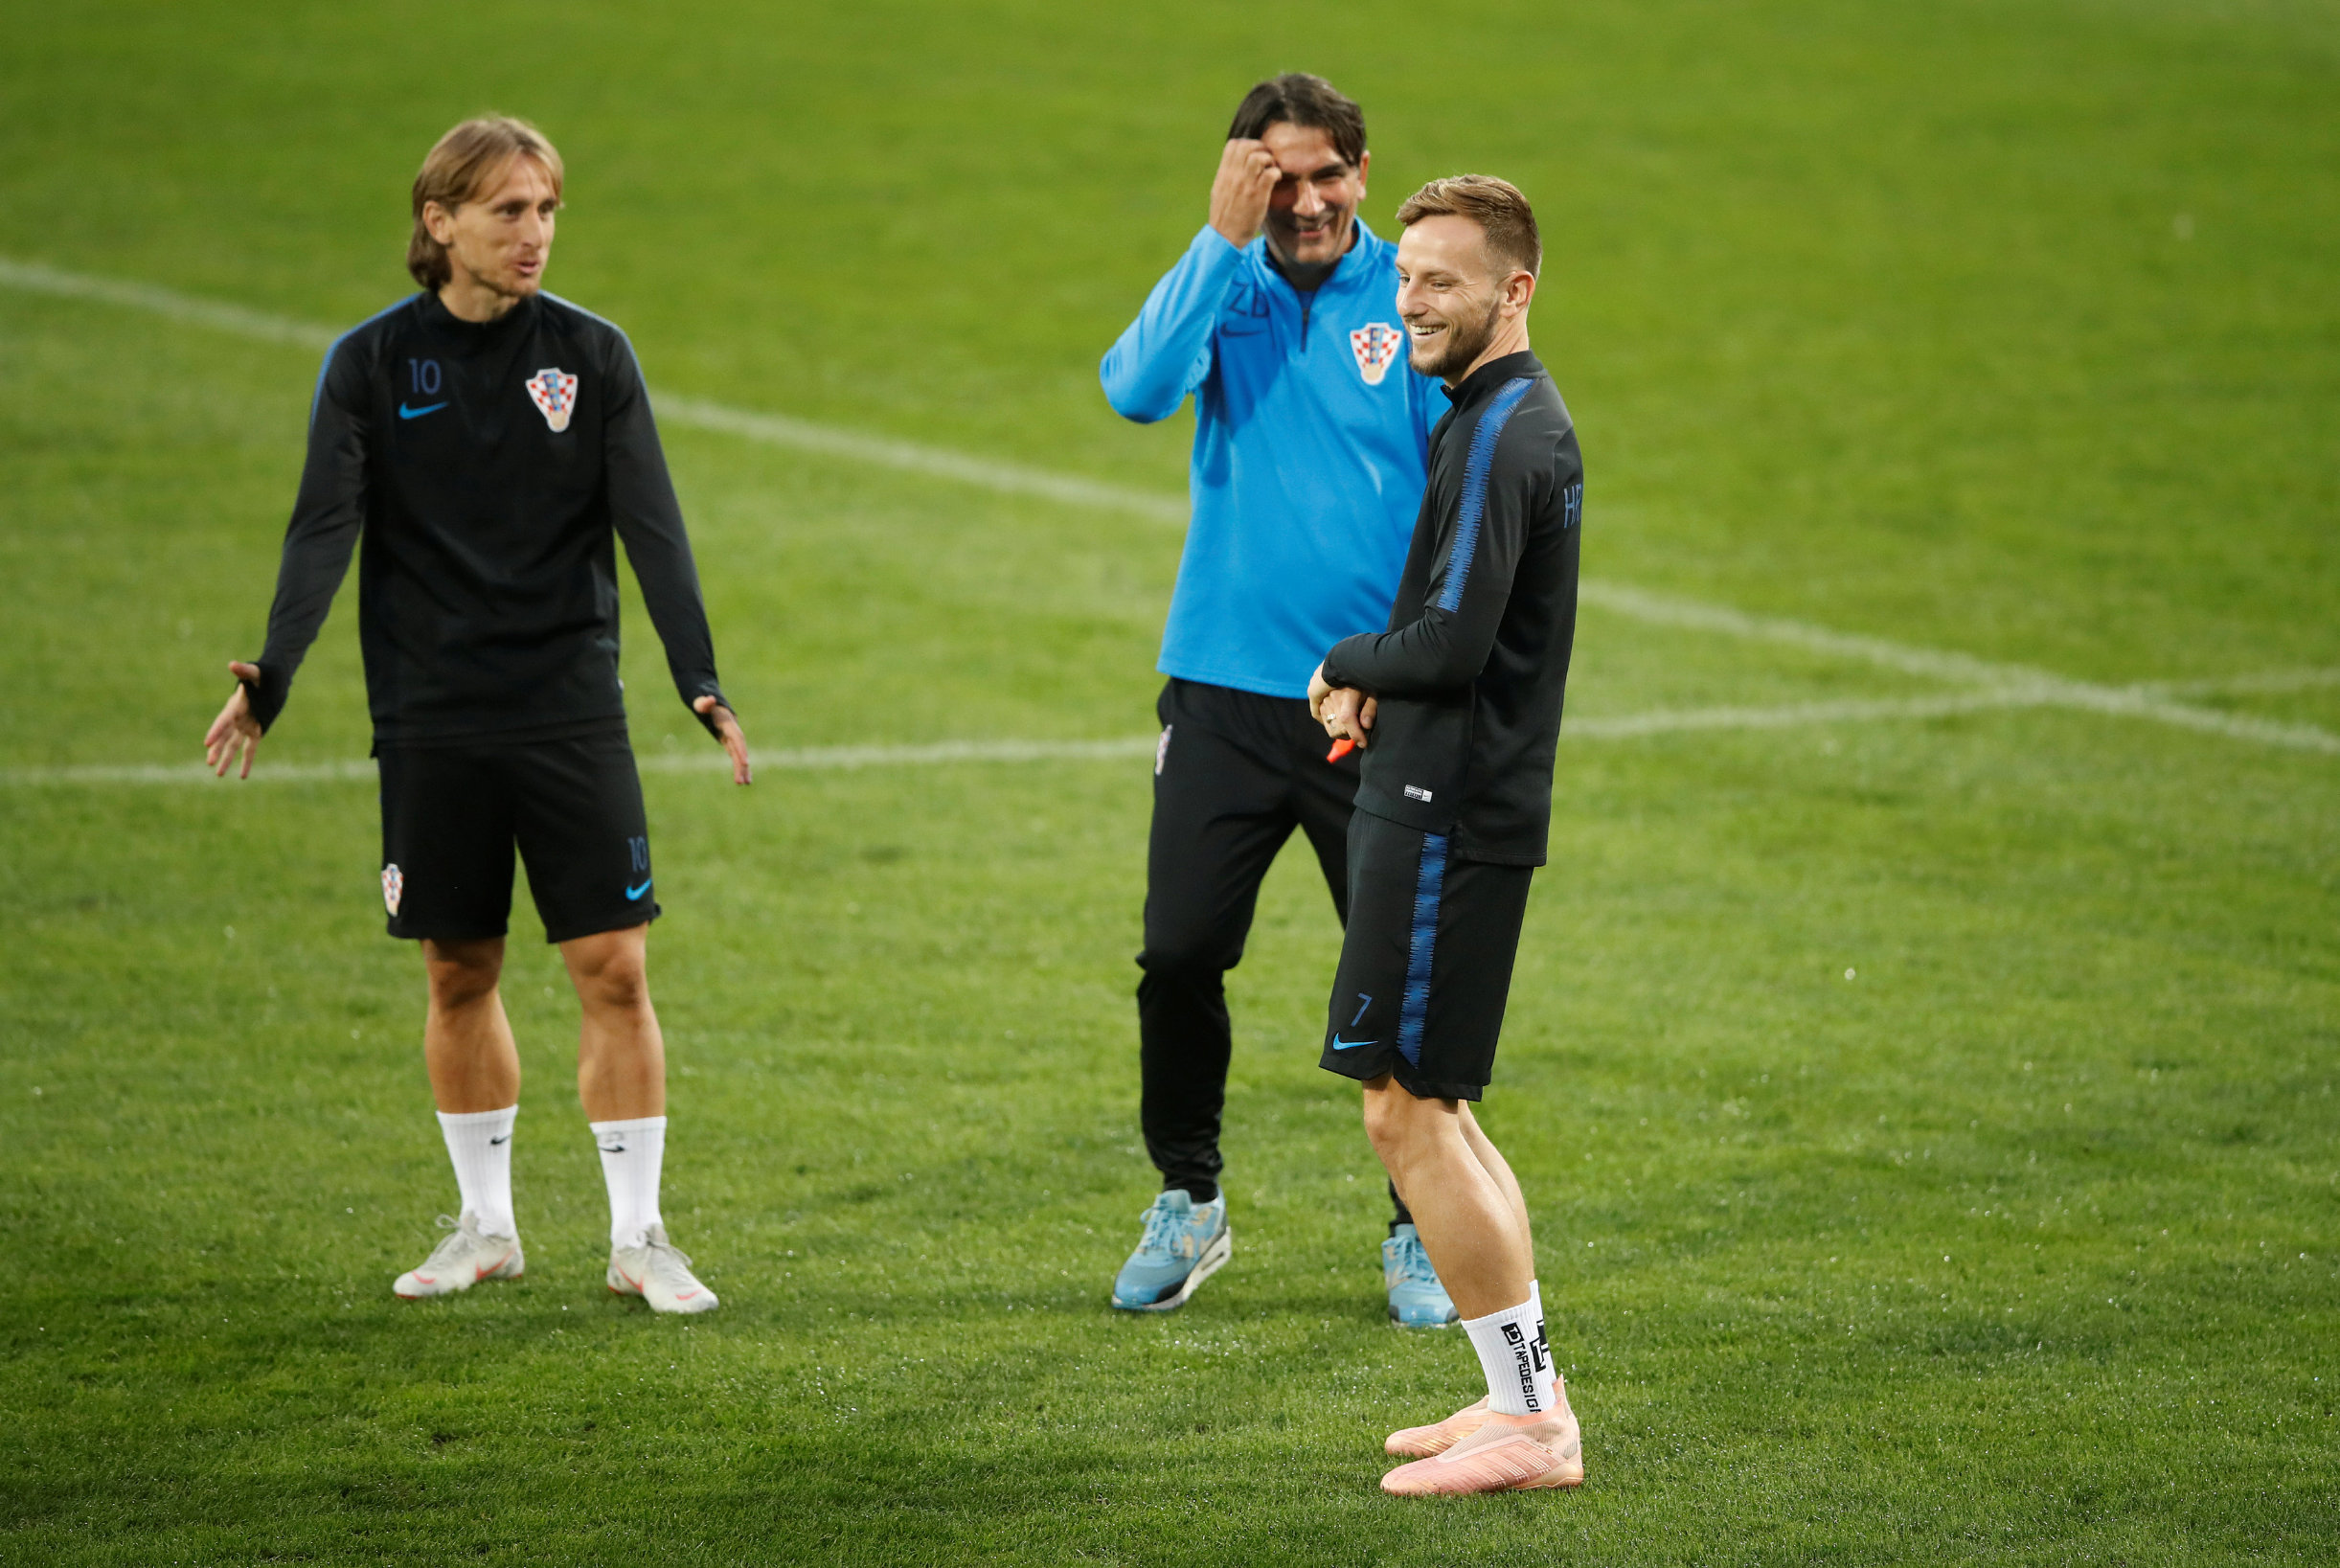 2018-10-11T161410Z_1726960899_RC17DA660000_RTRMADP_3_SOCCER-UEFA-NATIONS-CRO-ENG-PREVIEW